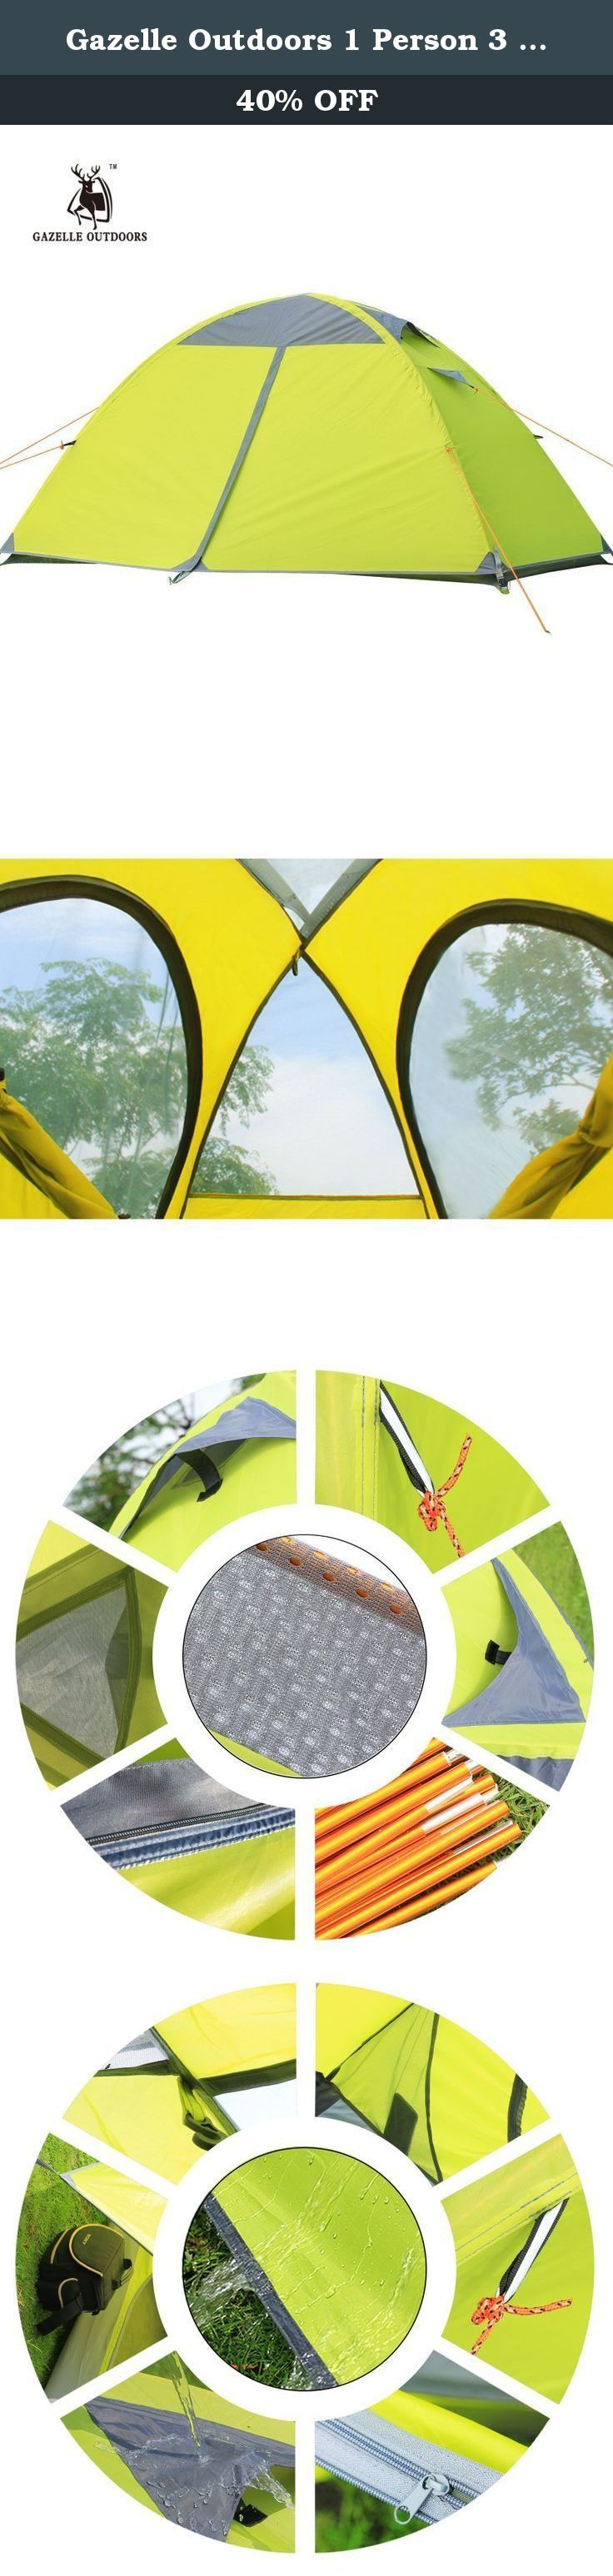 Gazelle Outdoors 1 Person 3 Season Double Layer Backpacking Tent, Waterproof Aluminum Rod, for Outdoor, Camping, Hiking, Travel (Yellow). - Easy to install. One person can install the tent easily and quickly.With high-strength aluminum poles, lightweight and it can stand high pressure. - Tent door uses two-way zipper, both sides can be tighten, especially add the door curtain pull clasp, more convenient and durable. - Two sides of the ventilation windows can be closed or open freely, it…